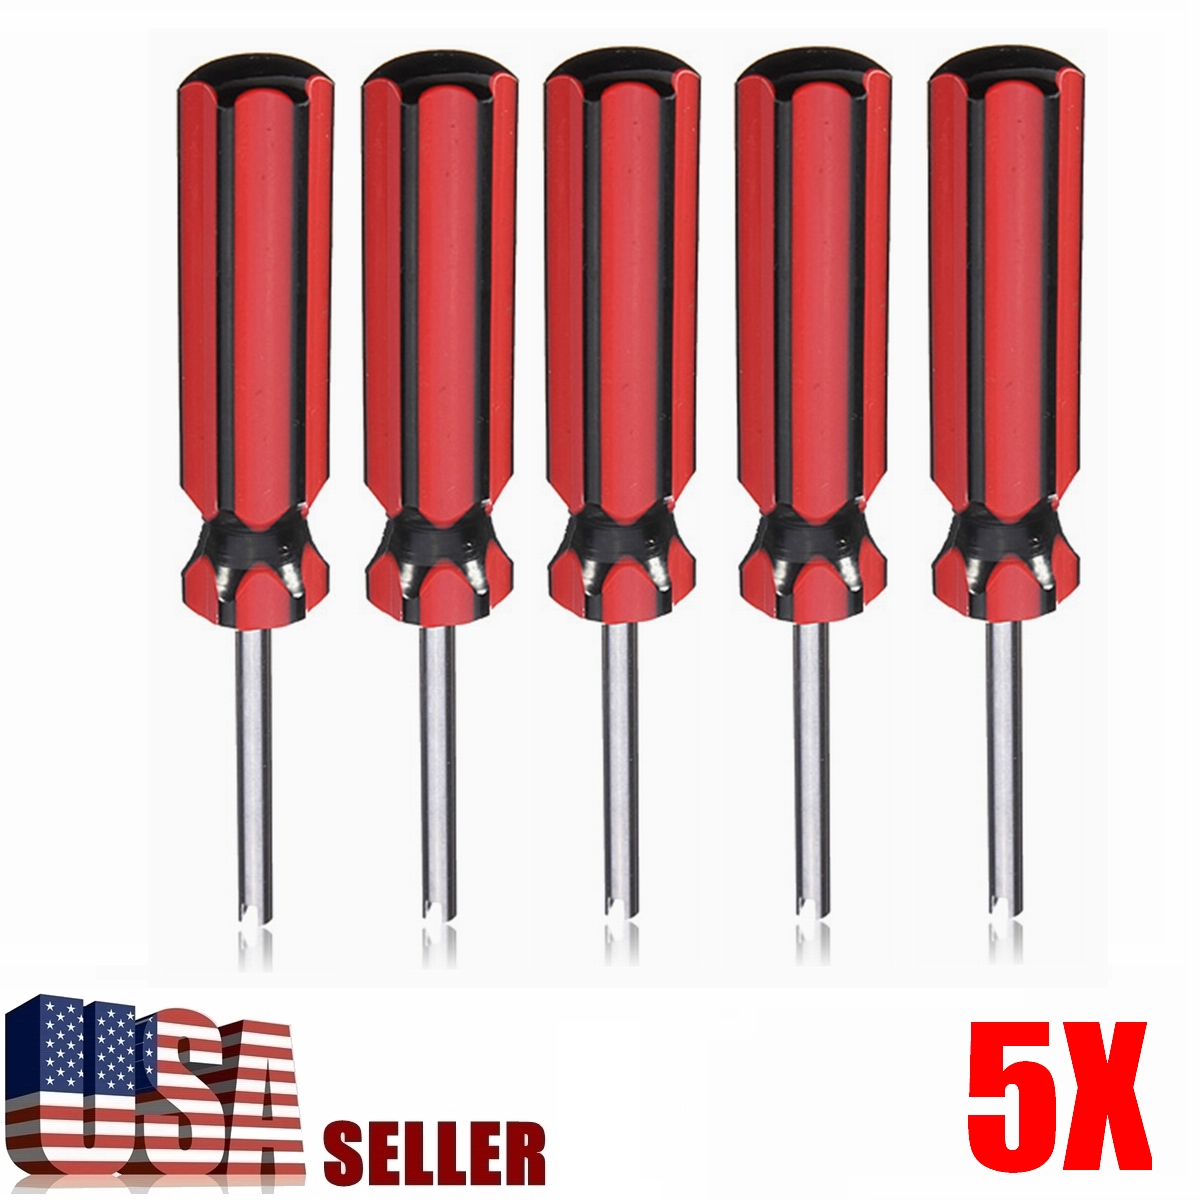 5 Pack Nonslip Handle Valve Stem Core Remover Tire Repair Install Tool for Car Truck Motorcycle Bicycle